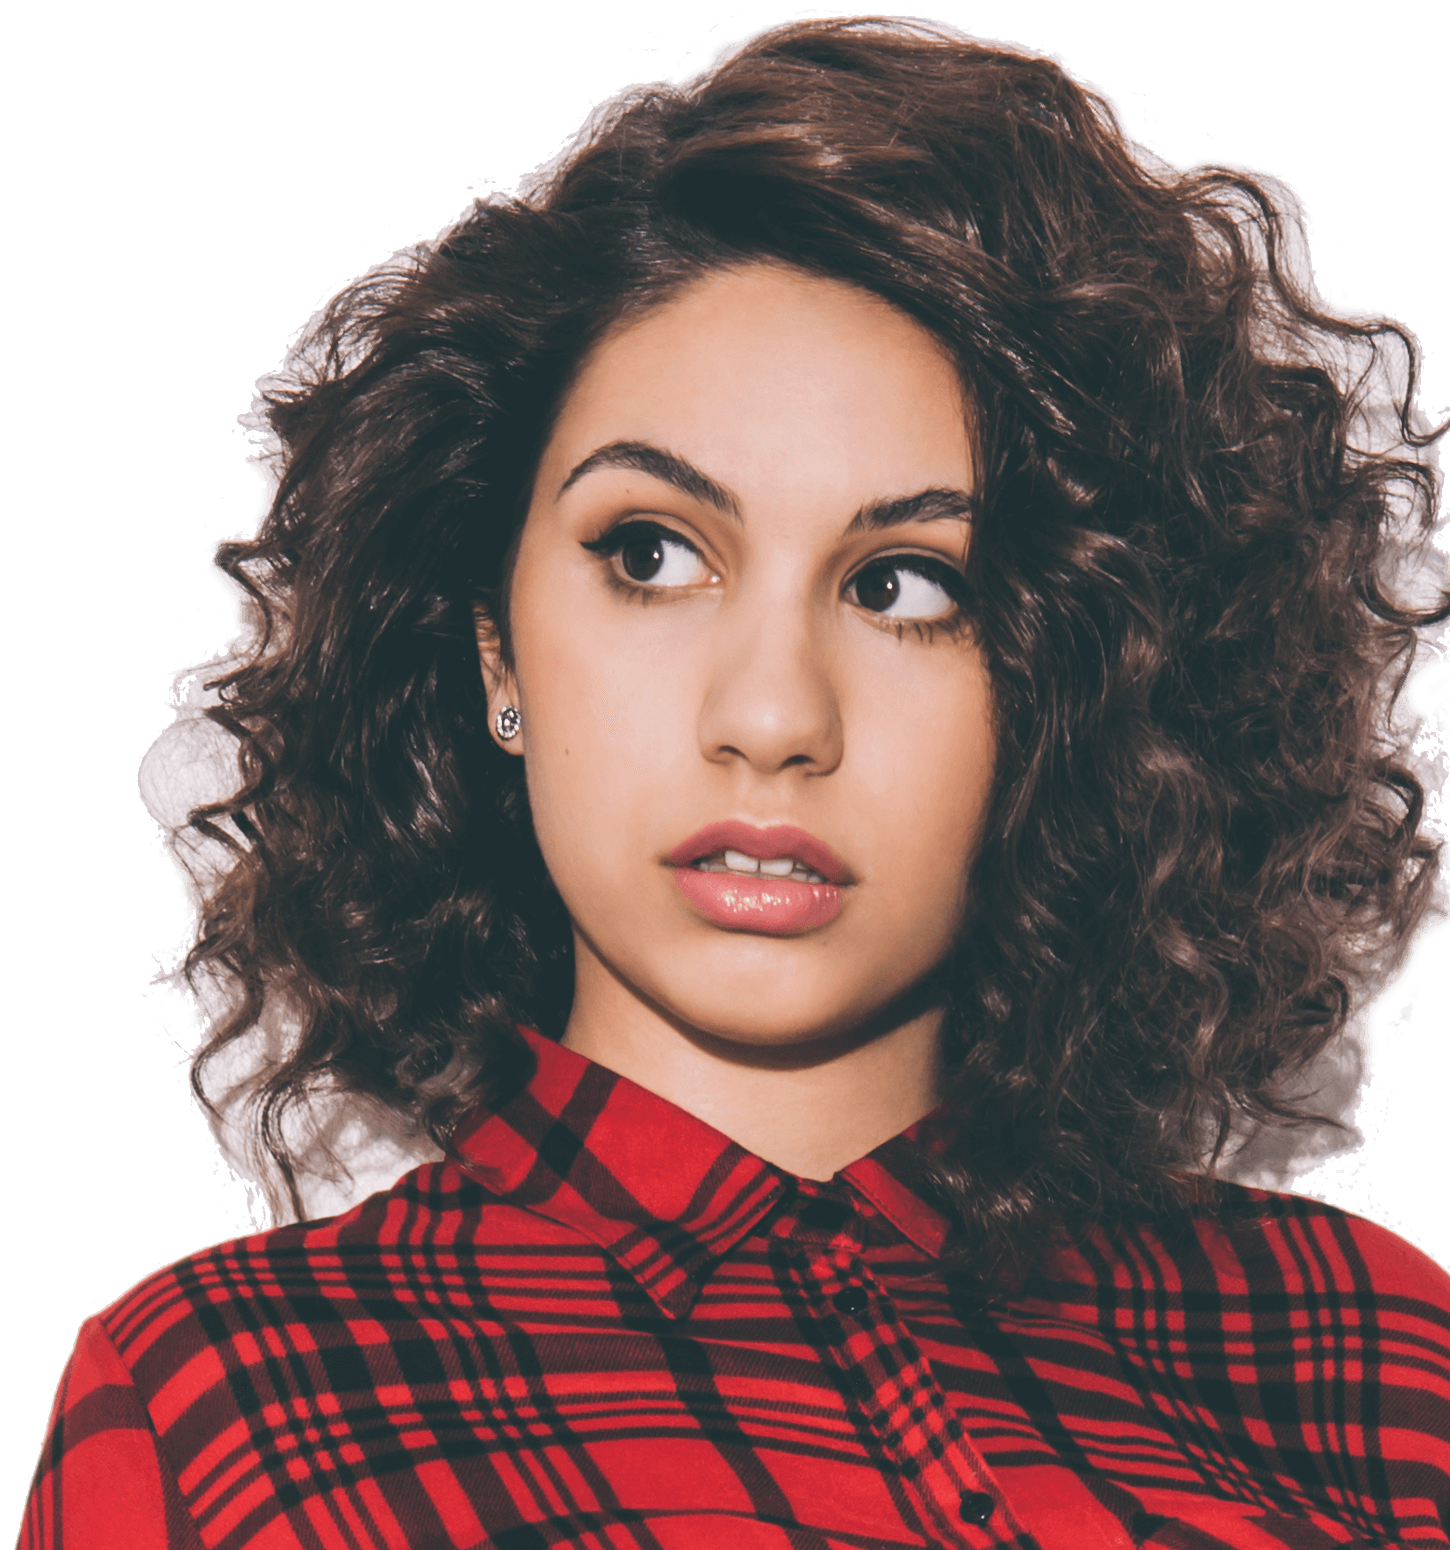 Alessia Cara Tour pt. 2 She's coming to Salt Lake City on October 11th